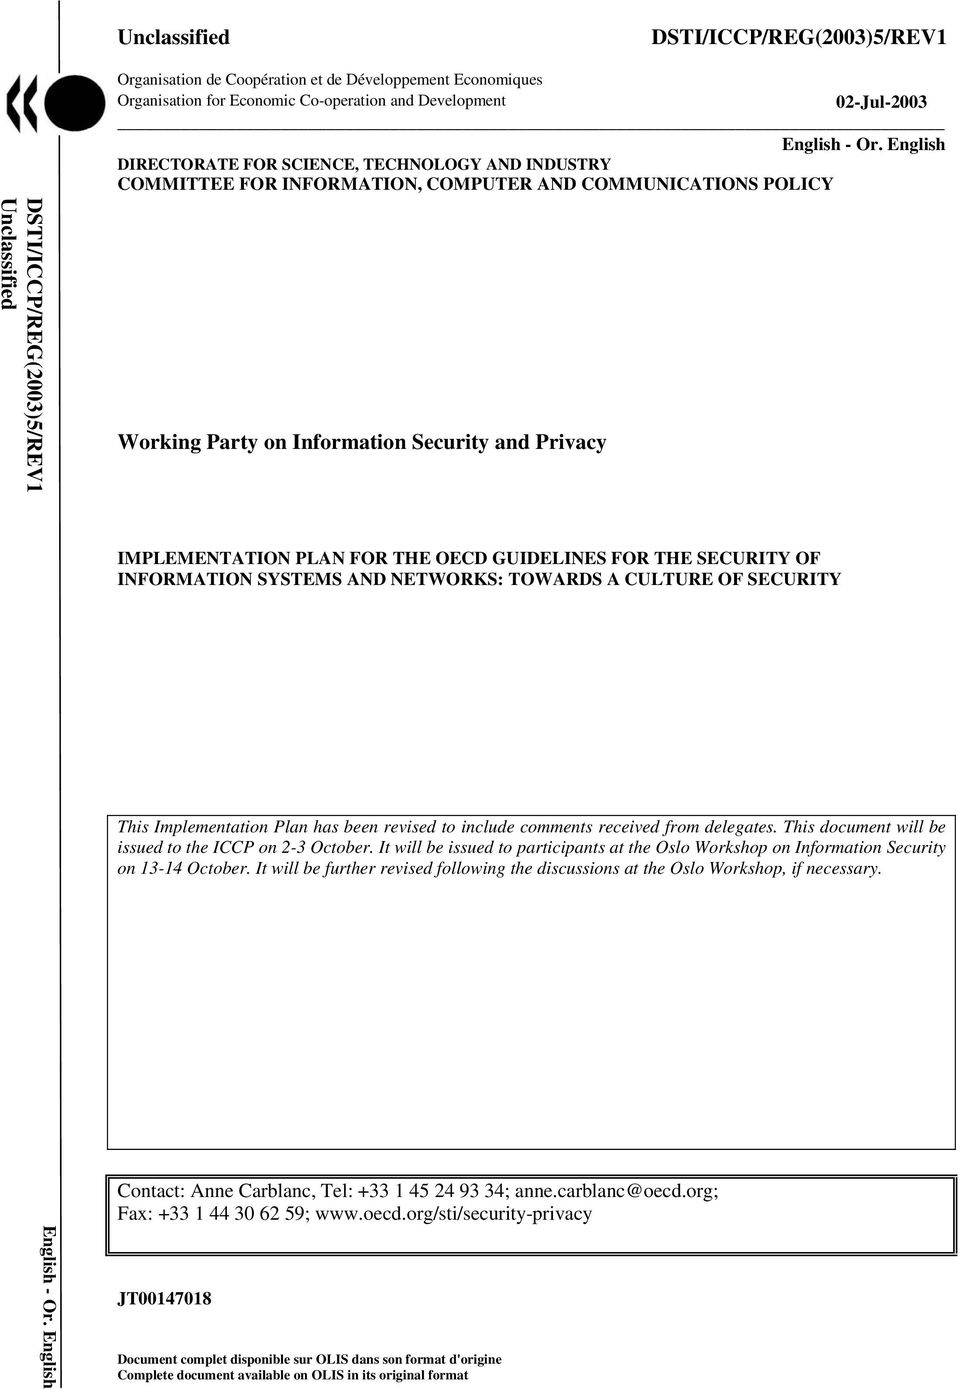 English DIRECTORATE FOR SCIENCE, TECHNOLOGY AND INDUSTRY COMMITTEE FOR INFORMATION, COMPUTER AND COMMUNICATIONS POLICY Working Party on Information Security and Privacy IMPLEMENTATION PLAN FOR THE